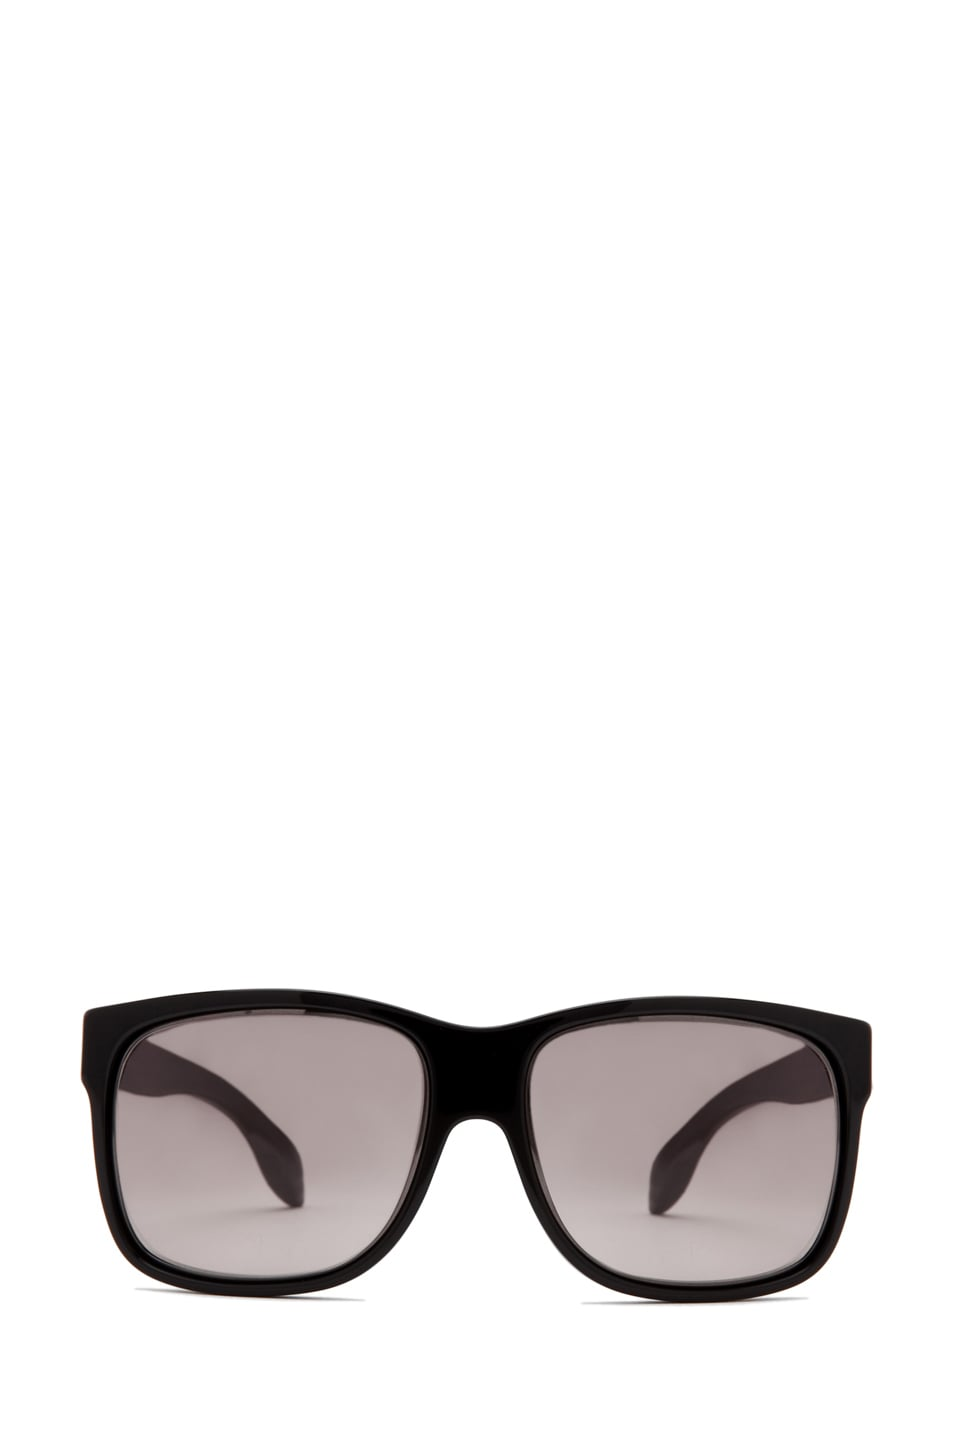 Image 1 of Alexander McQueen 4187 Sunglasses in Black